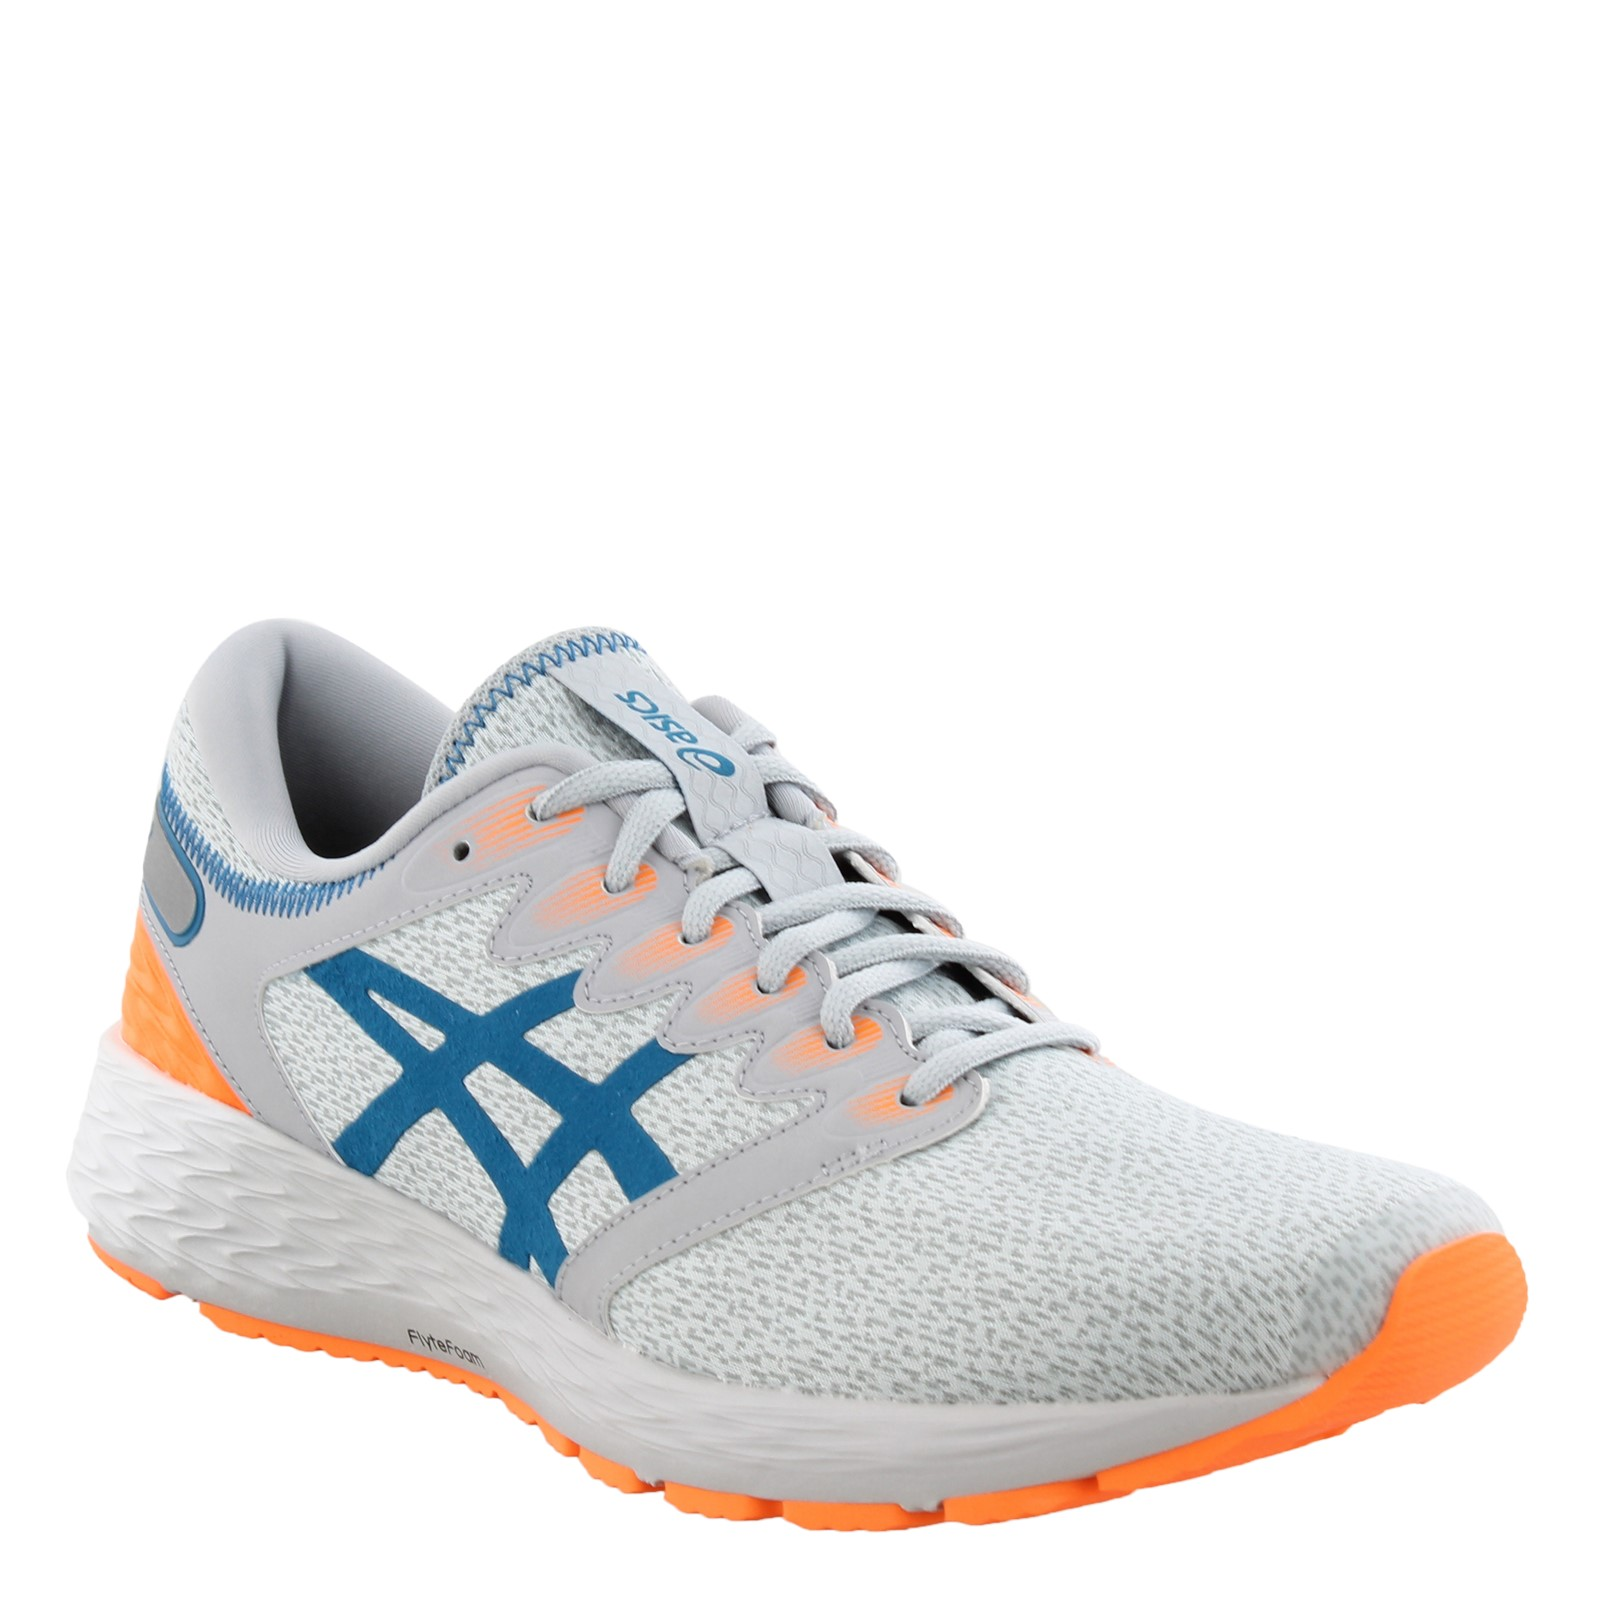 finest selection e8c4a c1eb9 Men's Asics, Roadhawk FF 2 Twist Running Sneakers